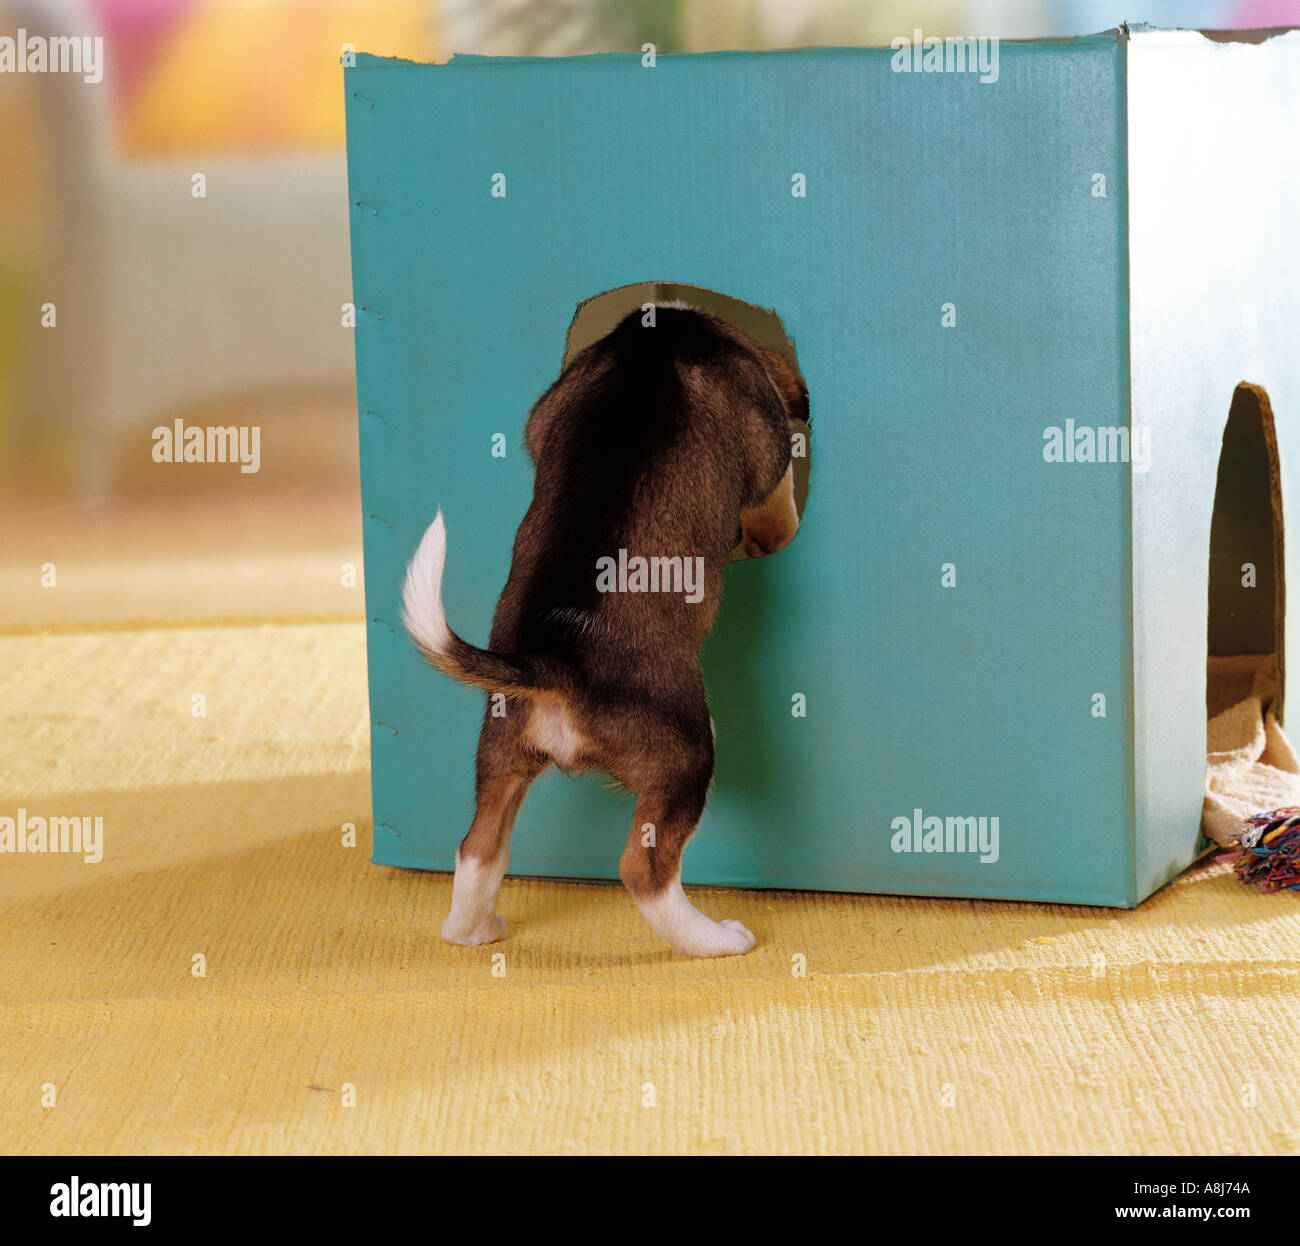 half breed dog puppy  7 1/2 weeks  looking into a box - Stock Image